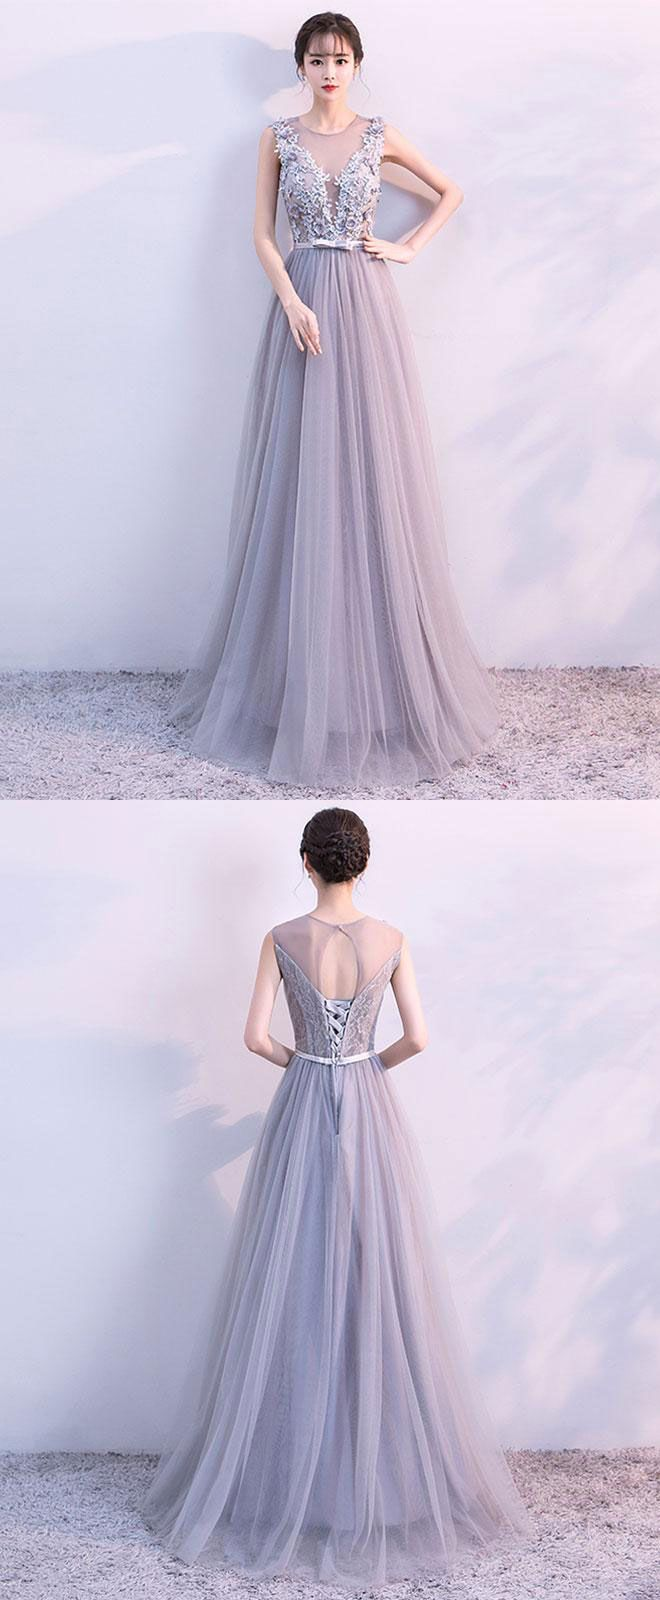 Gray A line tulle lace long prom dress, lace evening dress, gray tulle formal dress, bridesmaid dress